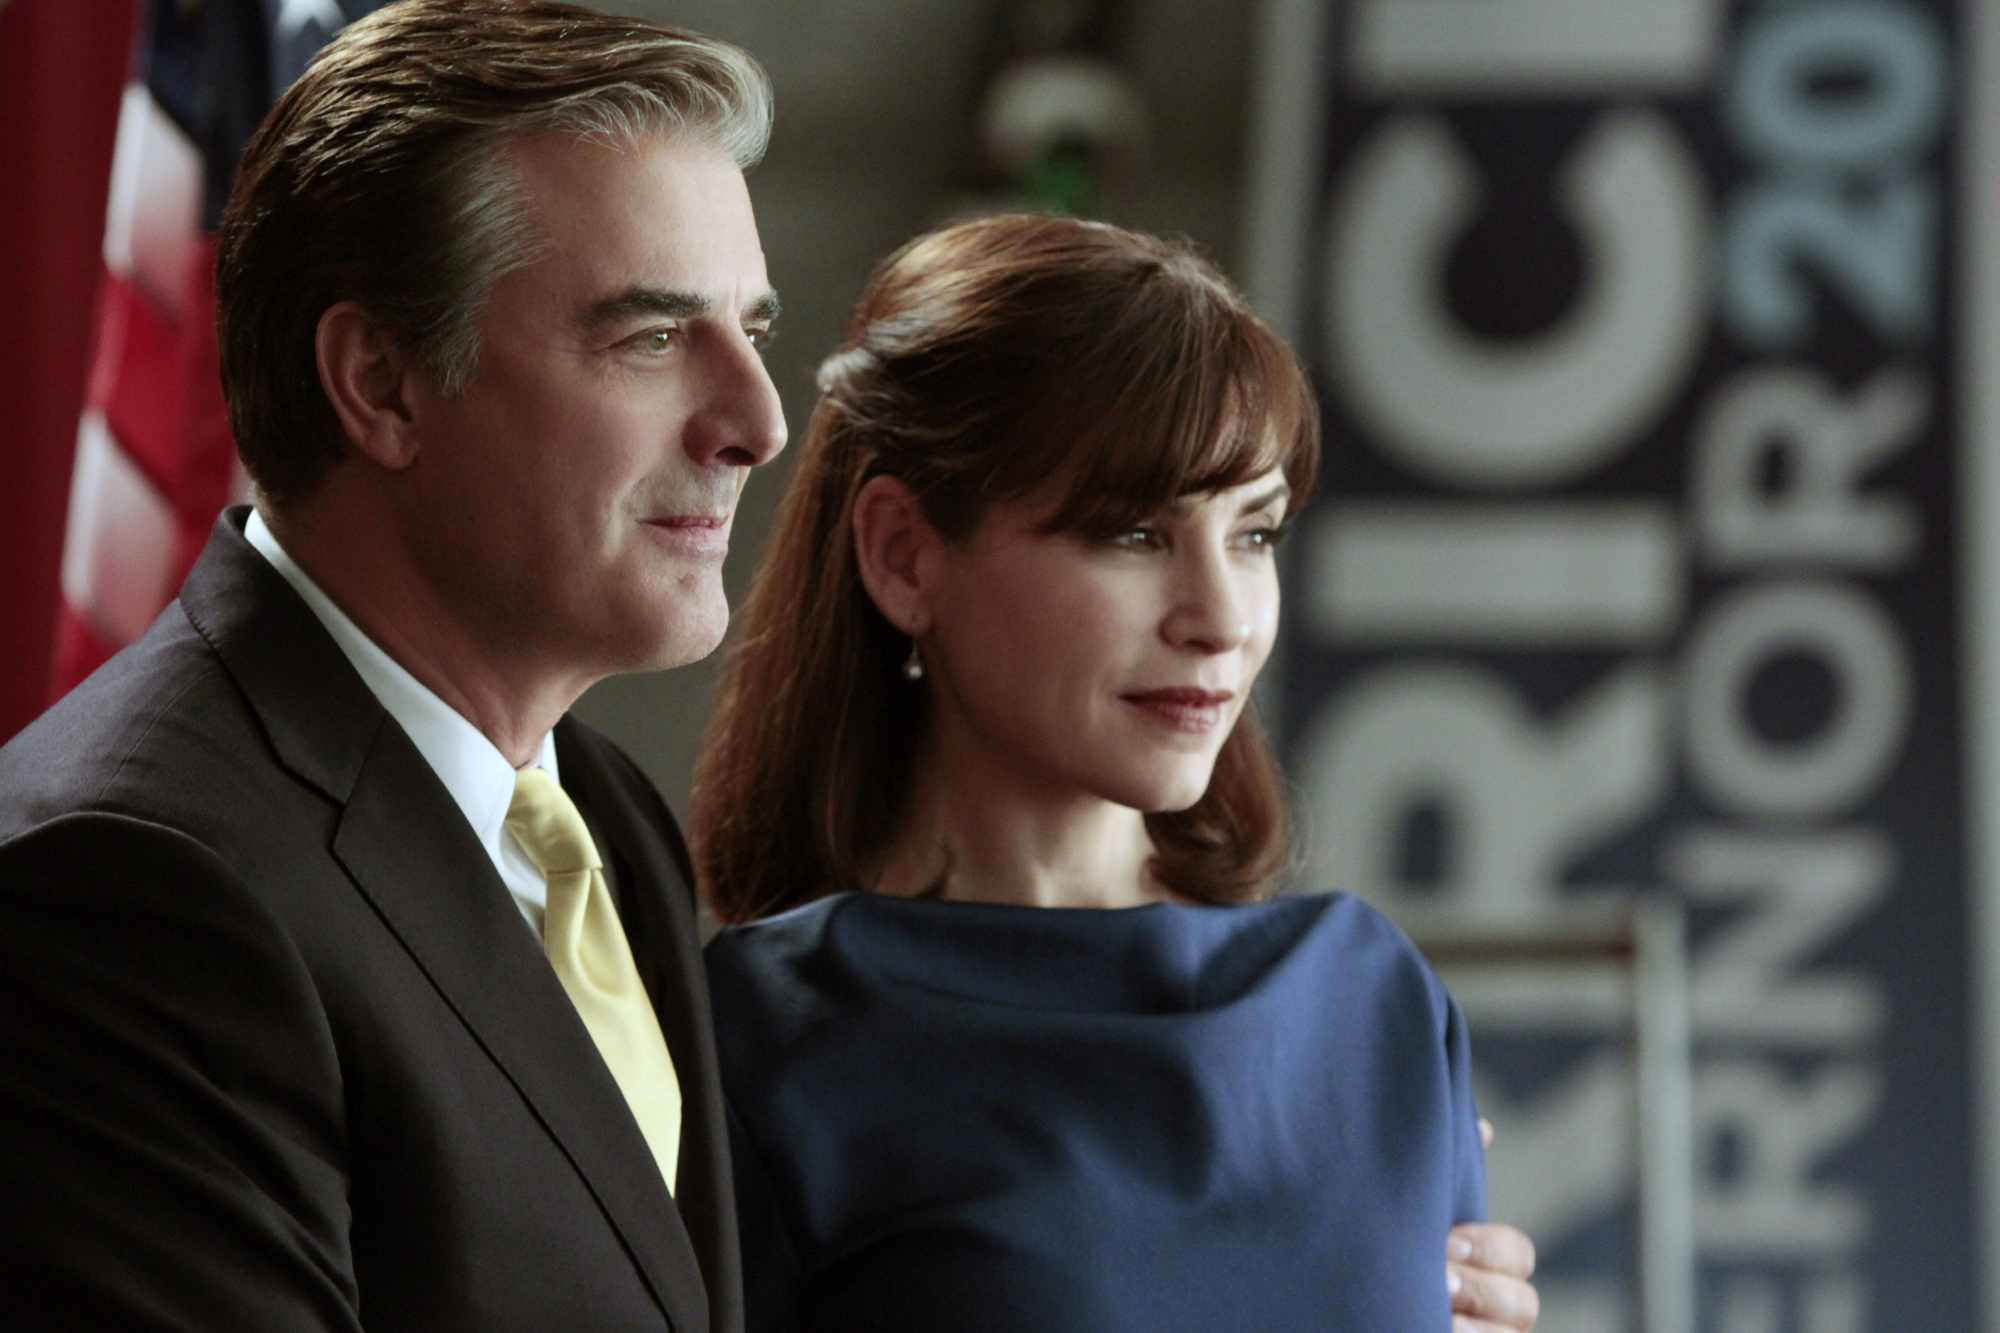 Alicia (Julianna Margulies, right) joins her estranged husband, Peter (Chris Noth. left), in a show of support as he announces his candidacy for governor, on  The Good Wife.